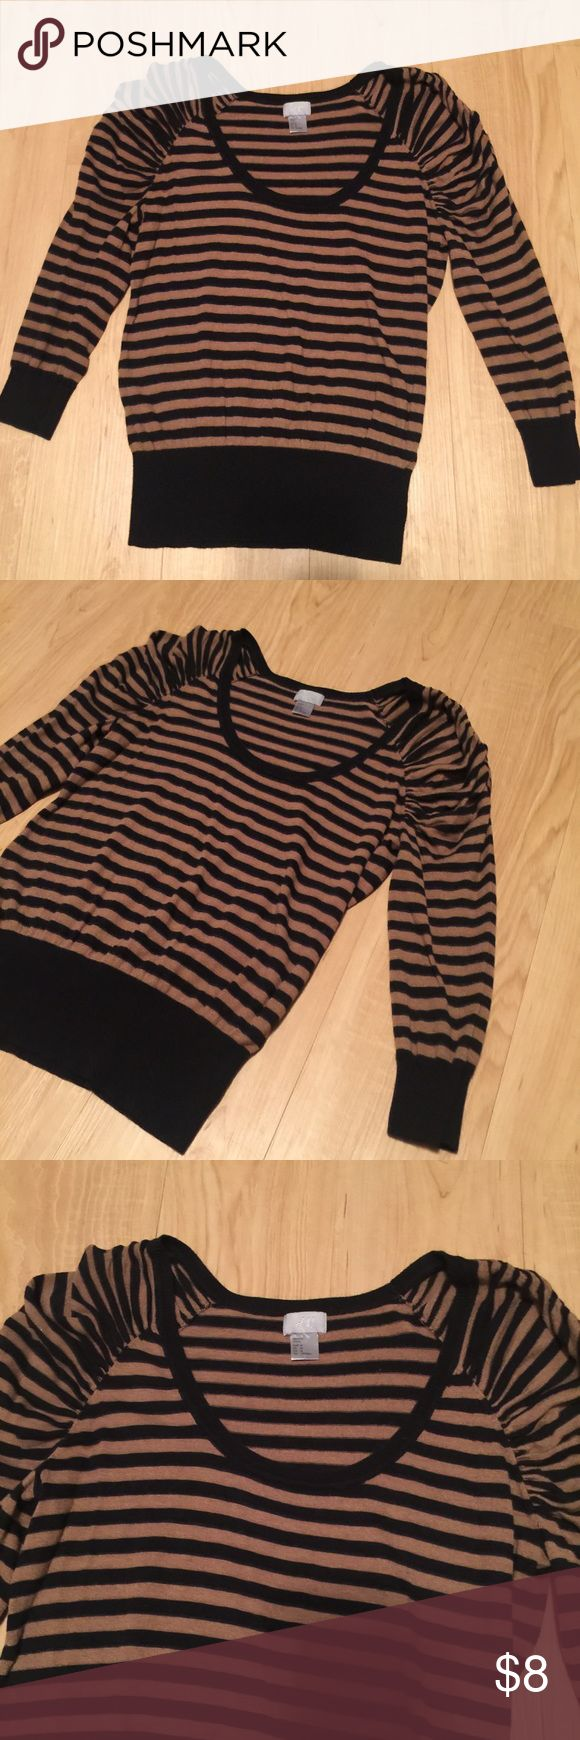 H&M Sweater Shirt Cute cute cute! Striped shirt that is low cut to show off your curves! Size medium, true to size, sweater does stretch. Also very soft. No flaws or defects. Bundle!! Boots for sale too! H&M Tops Tees - Long Sleeve